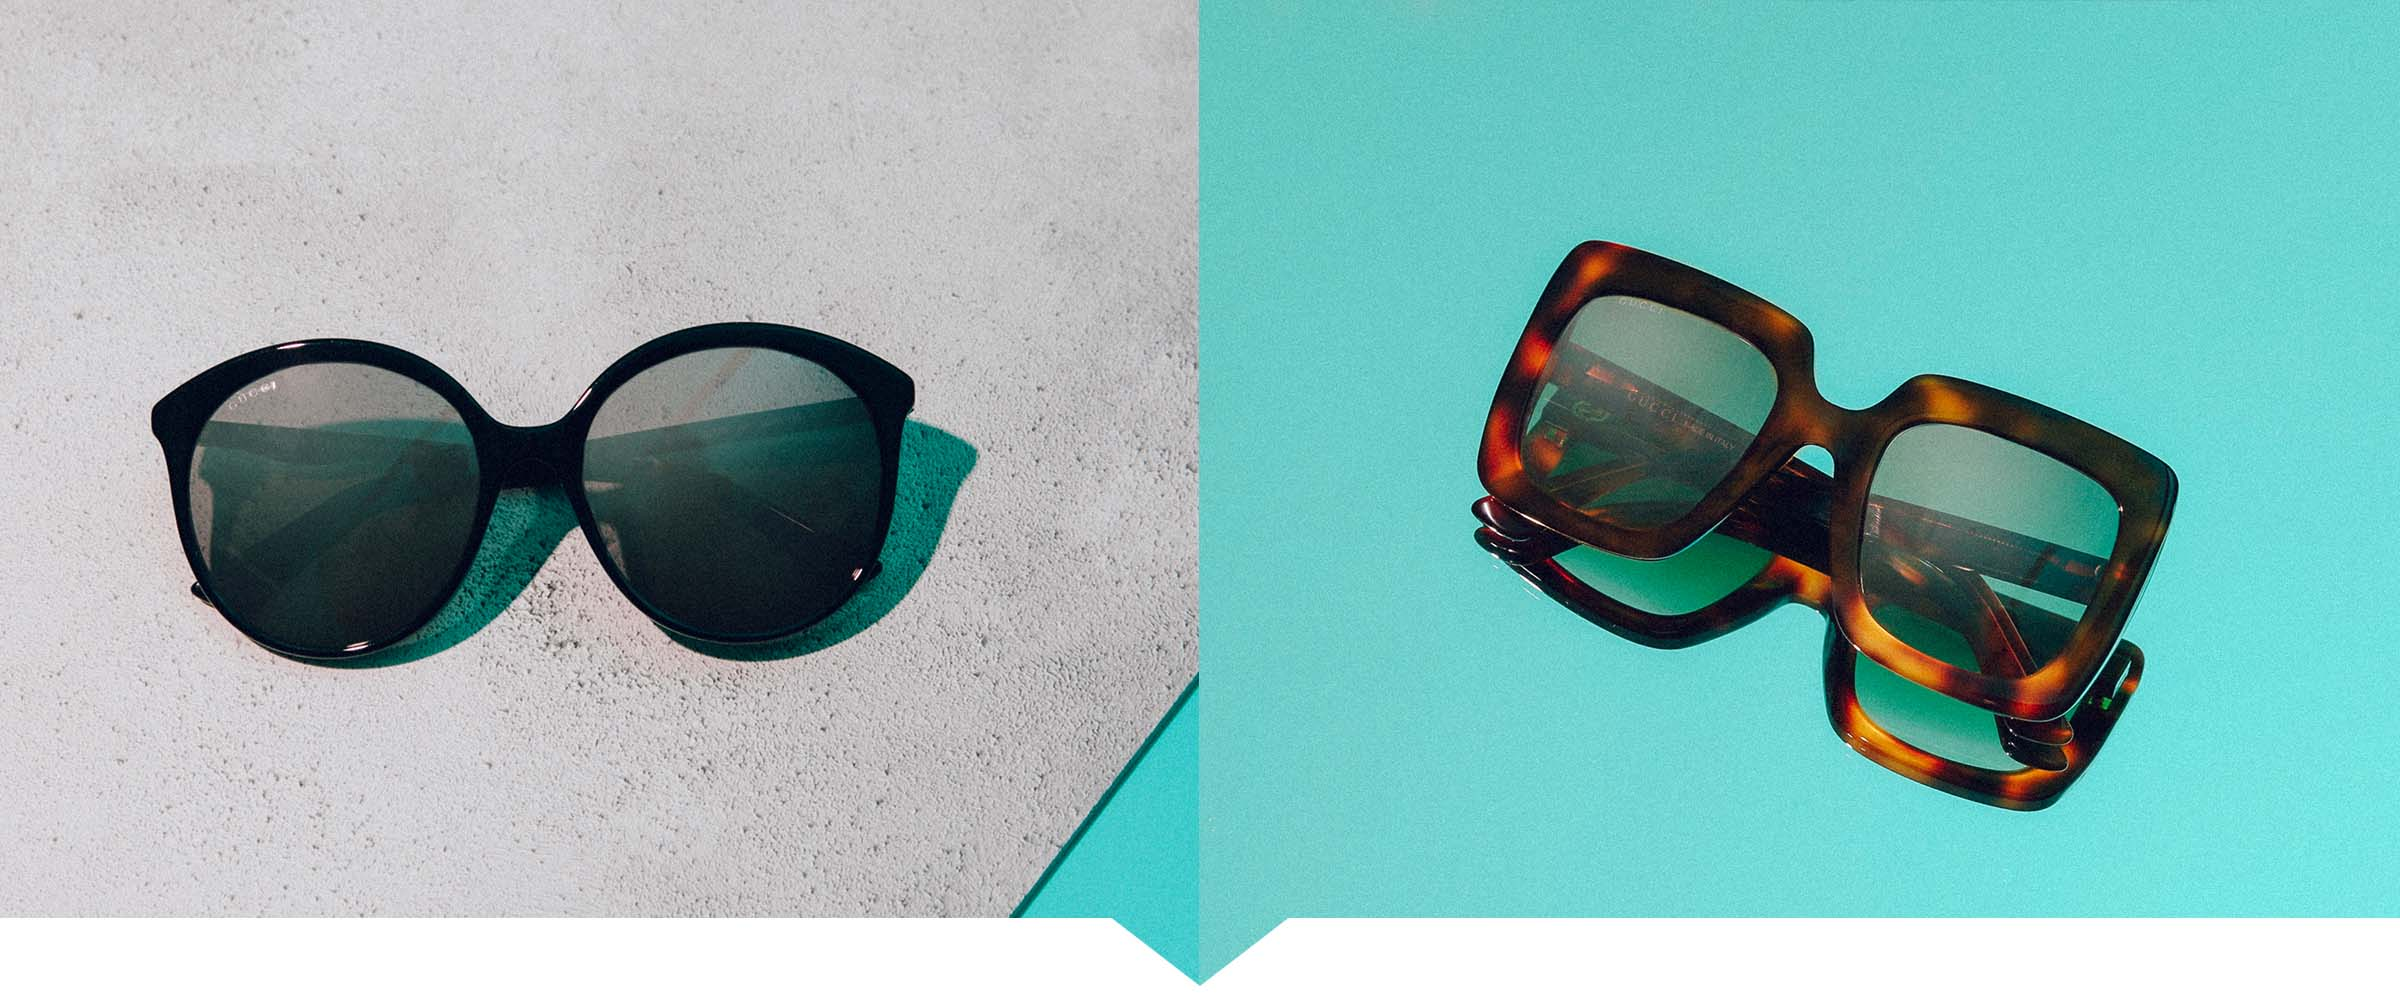 The How To: A Guide To Choosing Your Sunglasses